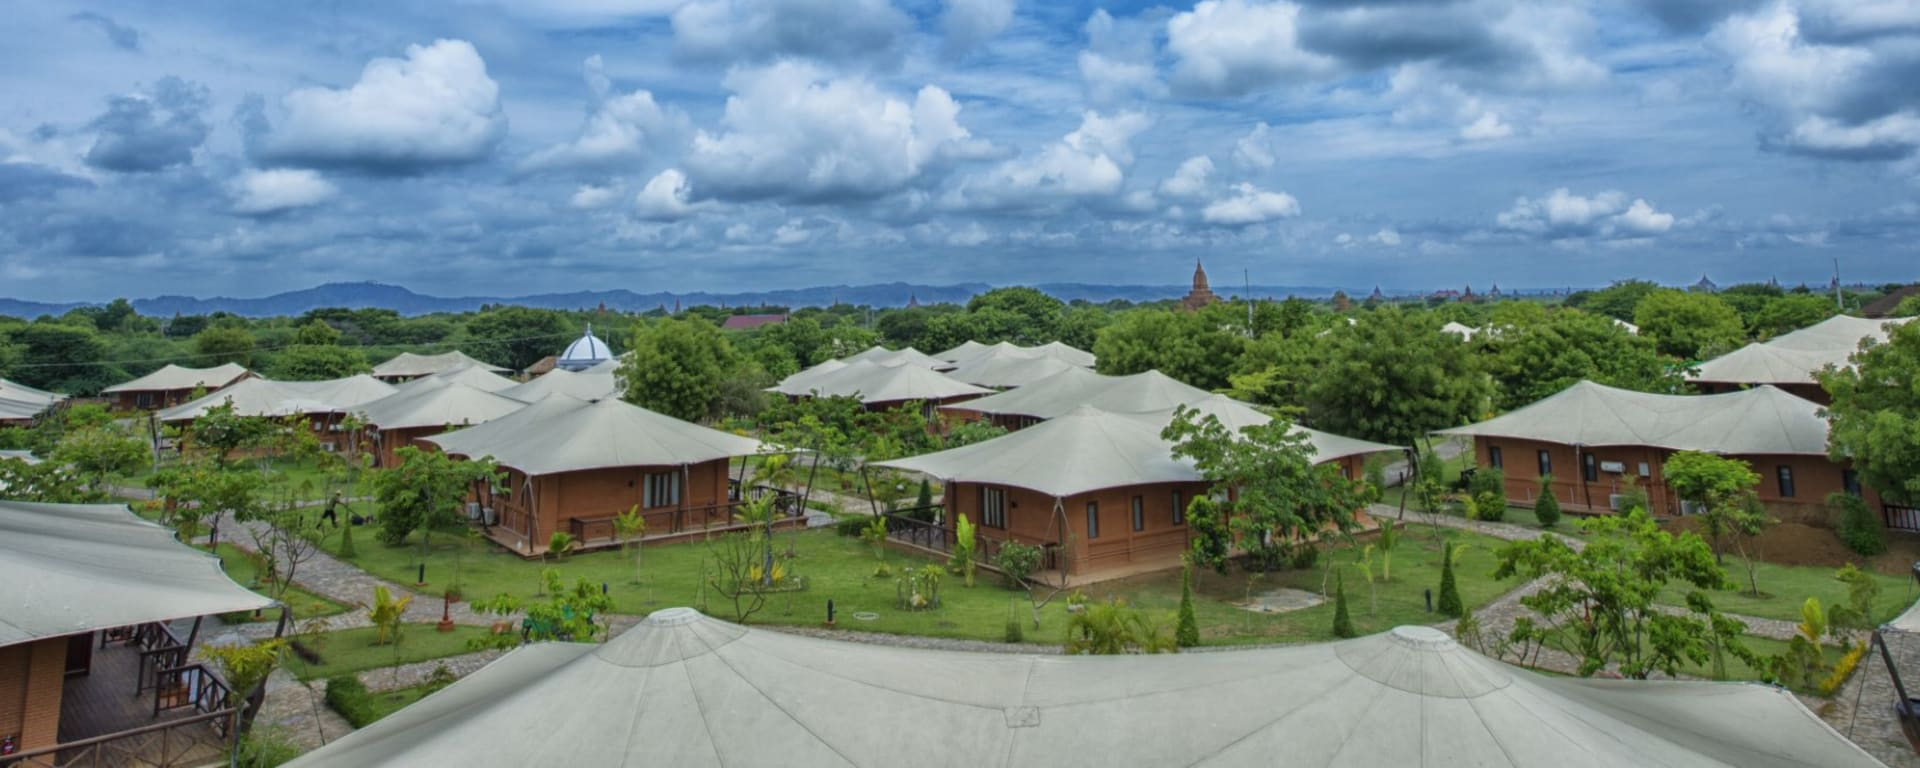 Bagan Lodge: Overview